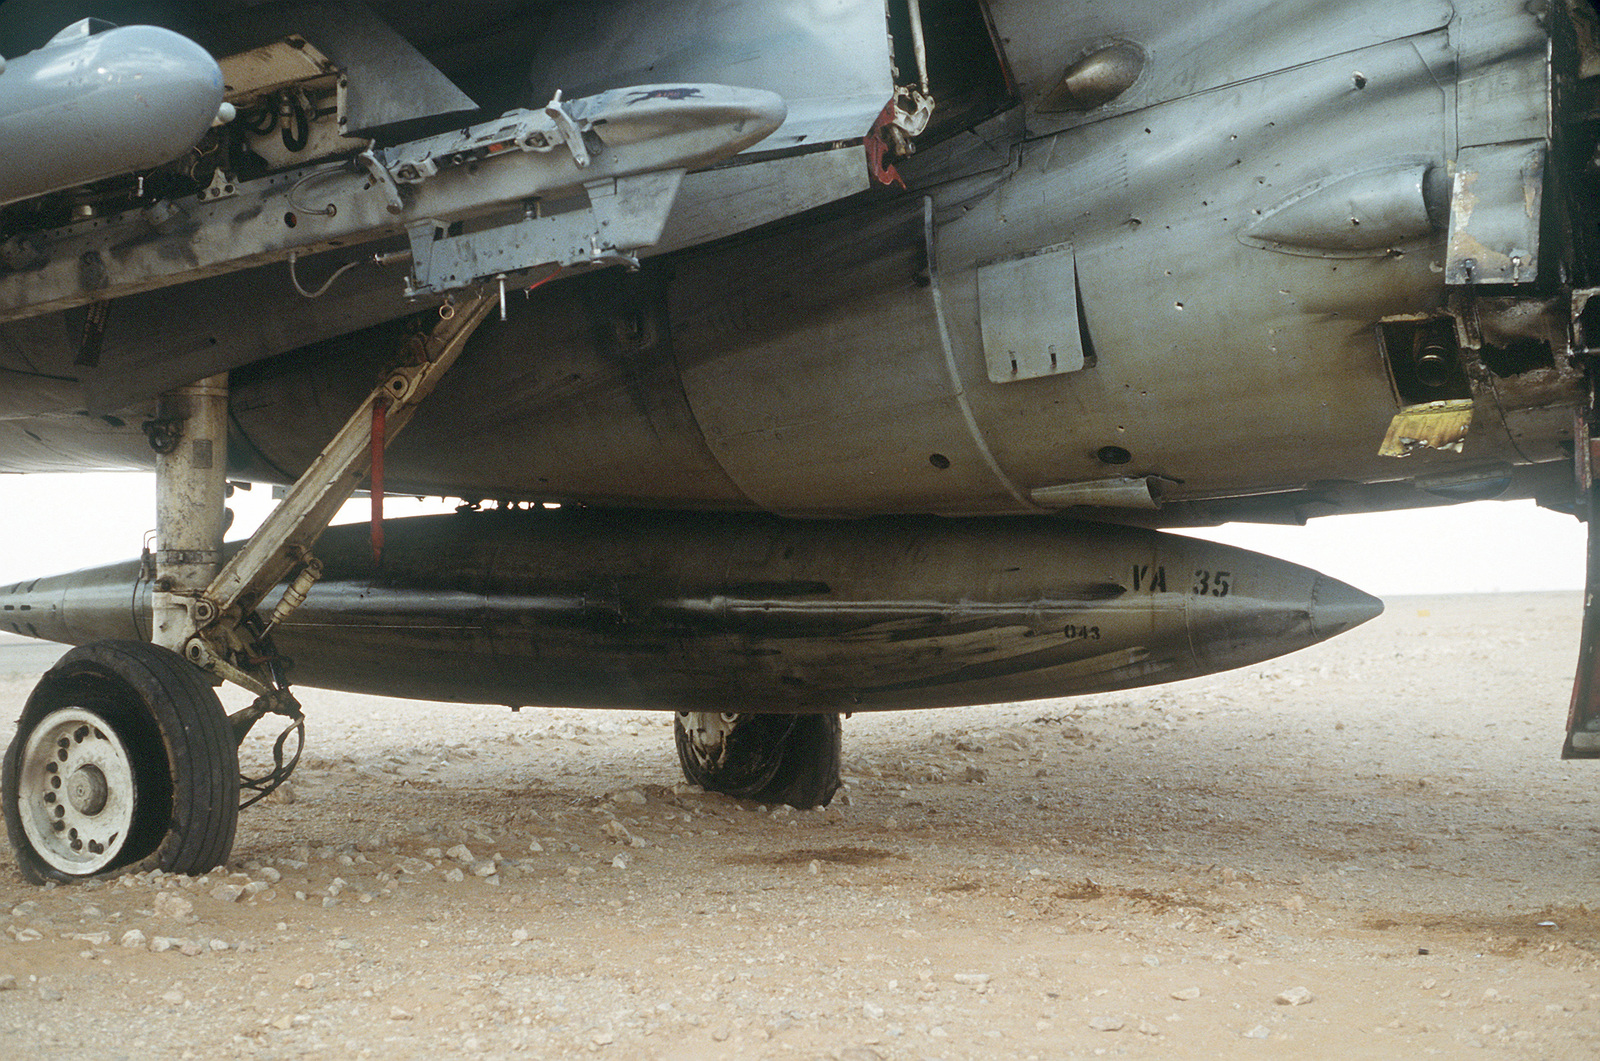 A fuel tank and the undercarriage of an A-6E Intruder attack aircraft from Attack Squadron 35 (VA-35), deployed from the aircraft carrier USS SARATOGA (CV-60), shows battle damage from a mission at the start of Operation Desert Storm.